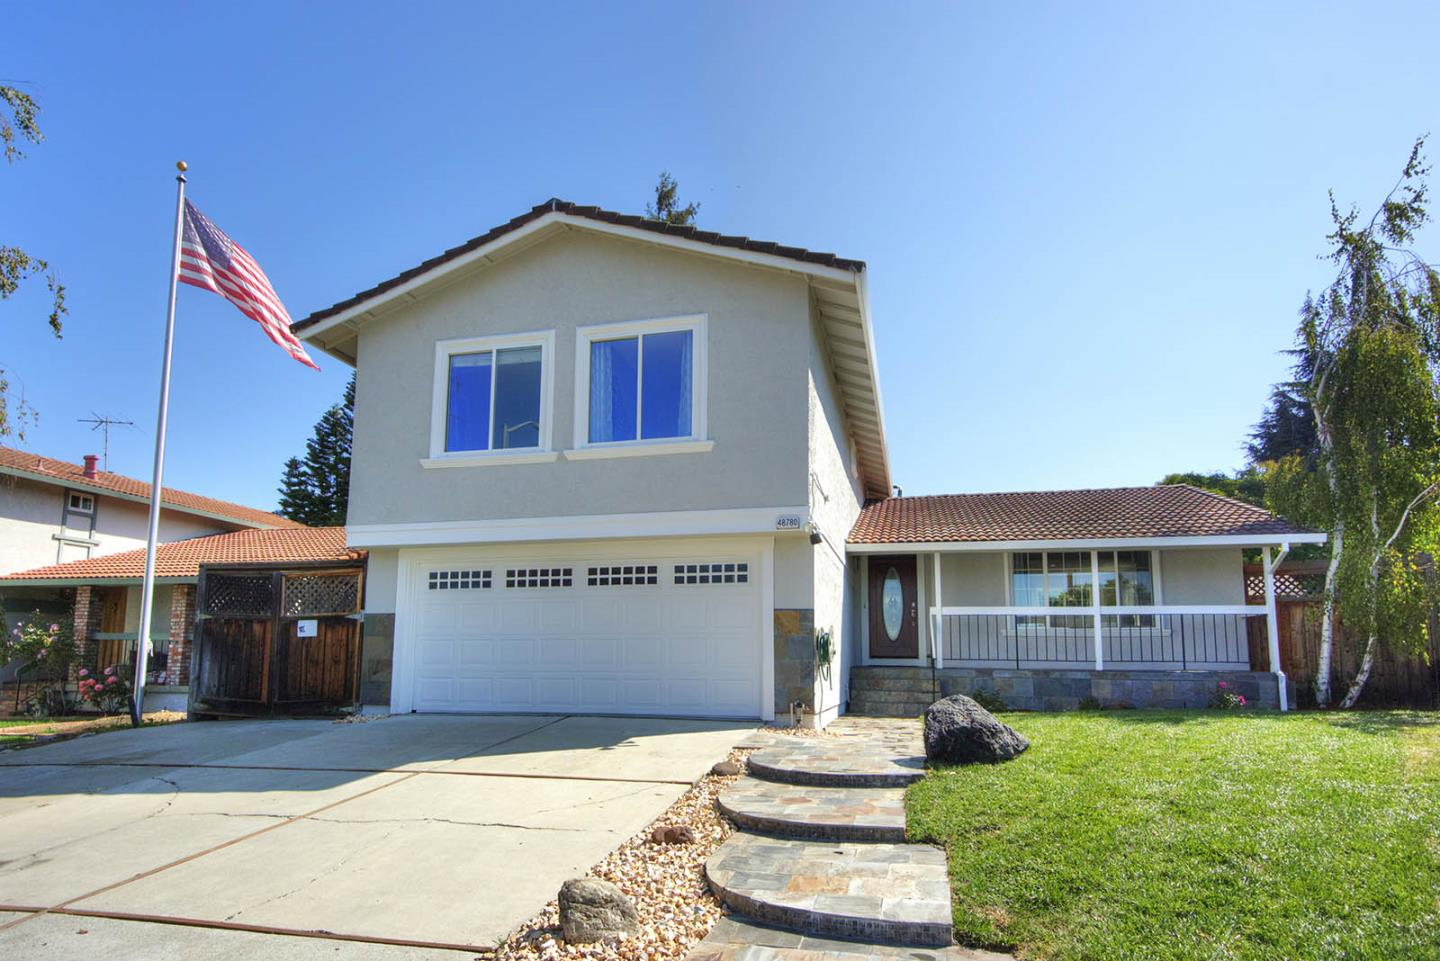 Detail Gallery Image 1 of 1 For 48780 Plomosa Rd, Fremont, CA, 94539 - 4 Beds | 2/1 Baths